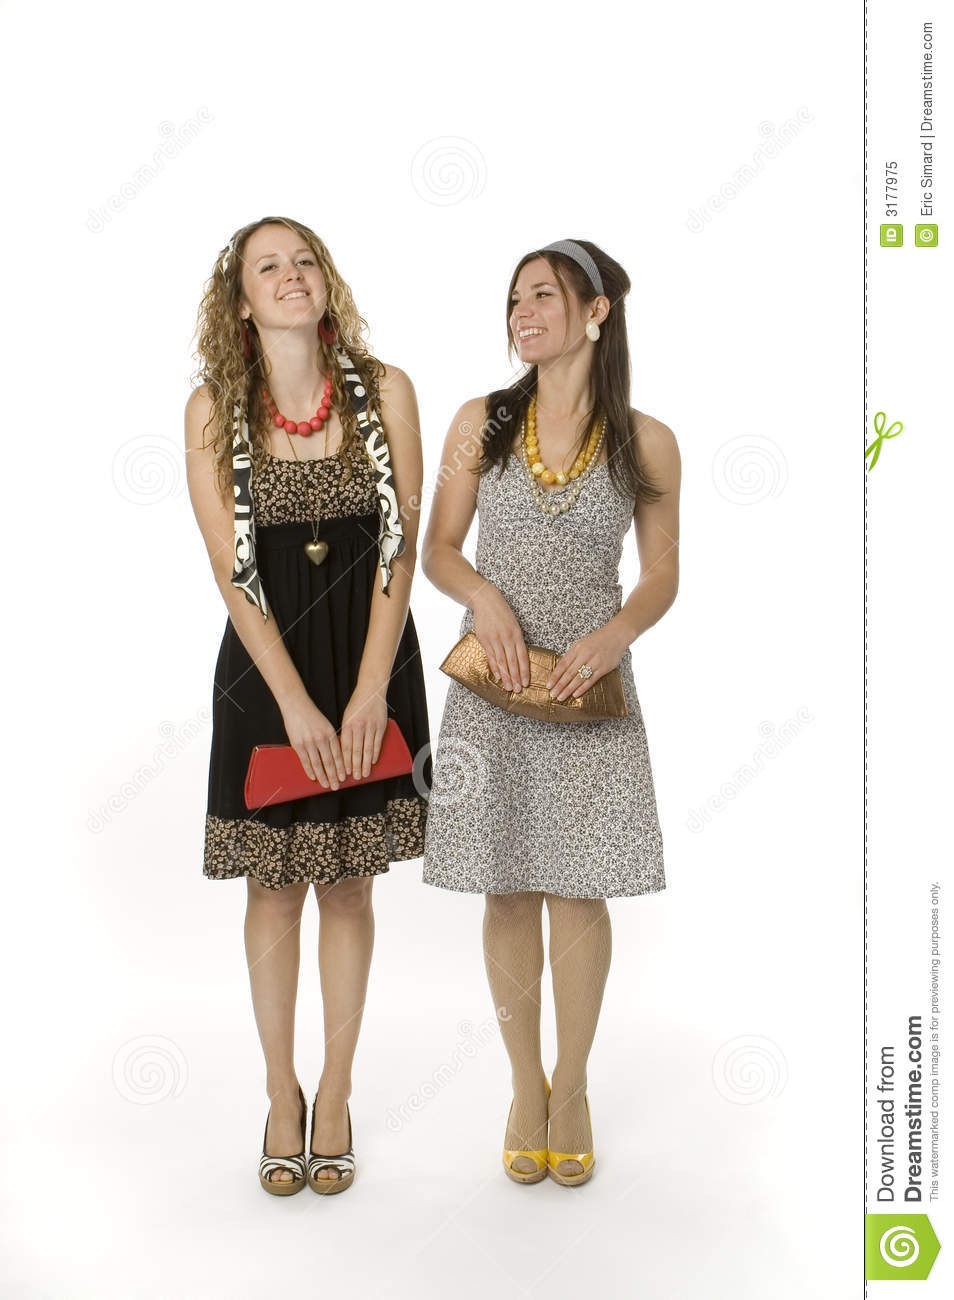 Tennage Girls Fashion Royalty Free Stock Photo Image 3177975